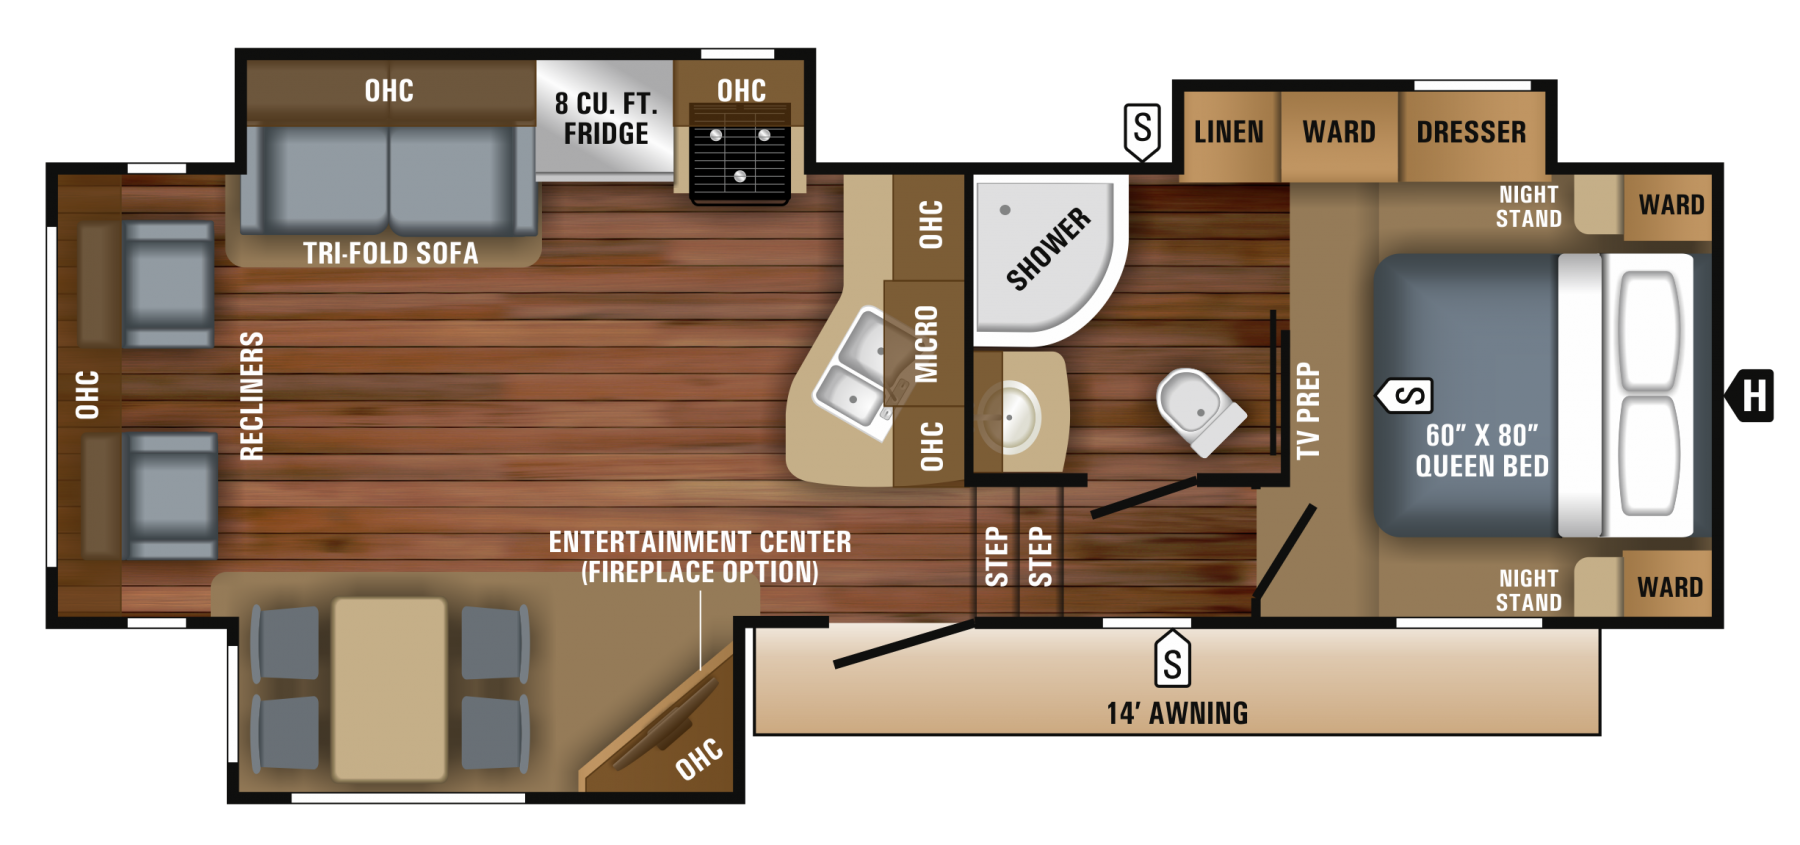 The Rv Center 2003 Jayco Fifth Wheel Wiring Diagram 2018 Eagle Ht 275rlts By Year End Blow Out Priced